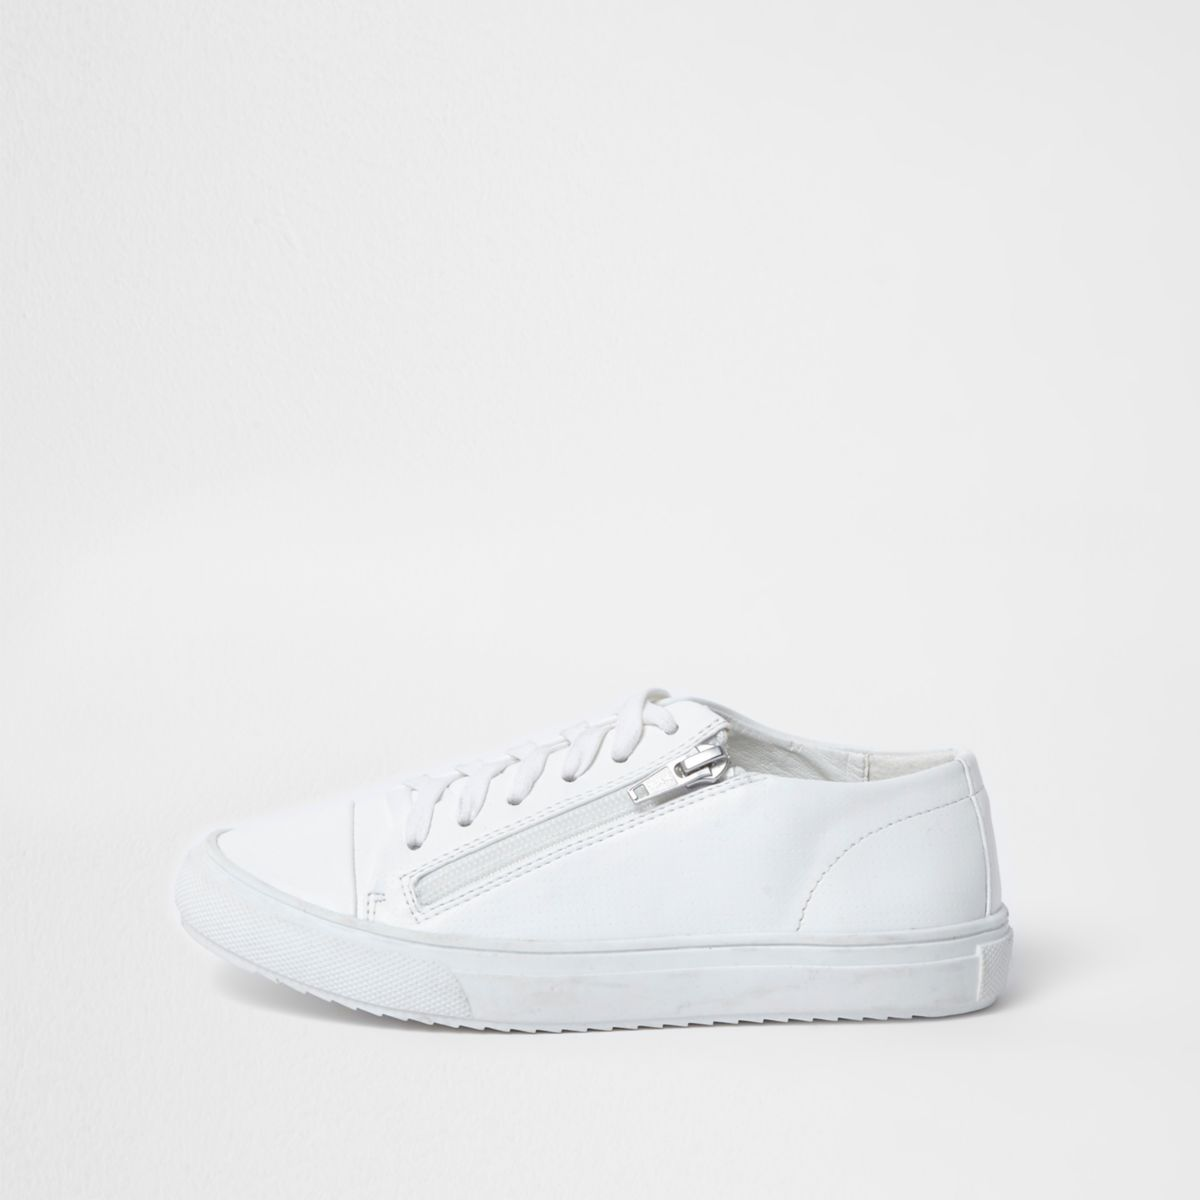 Kids white lace-up zip side trainers